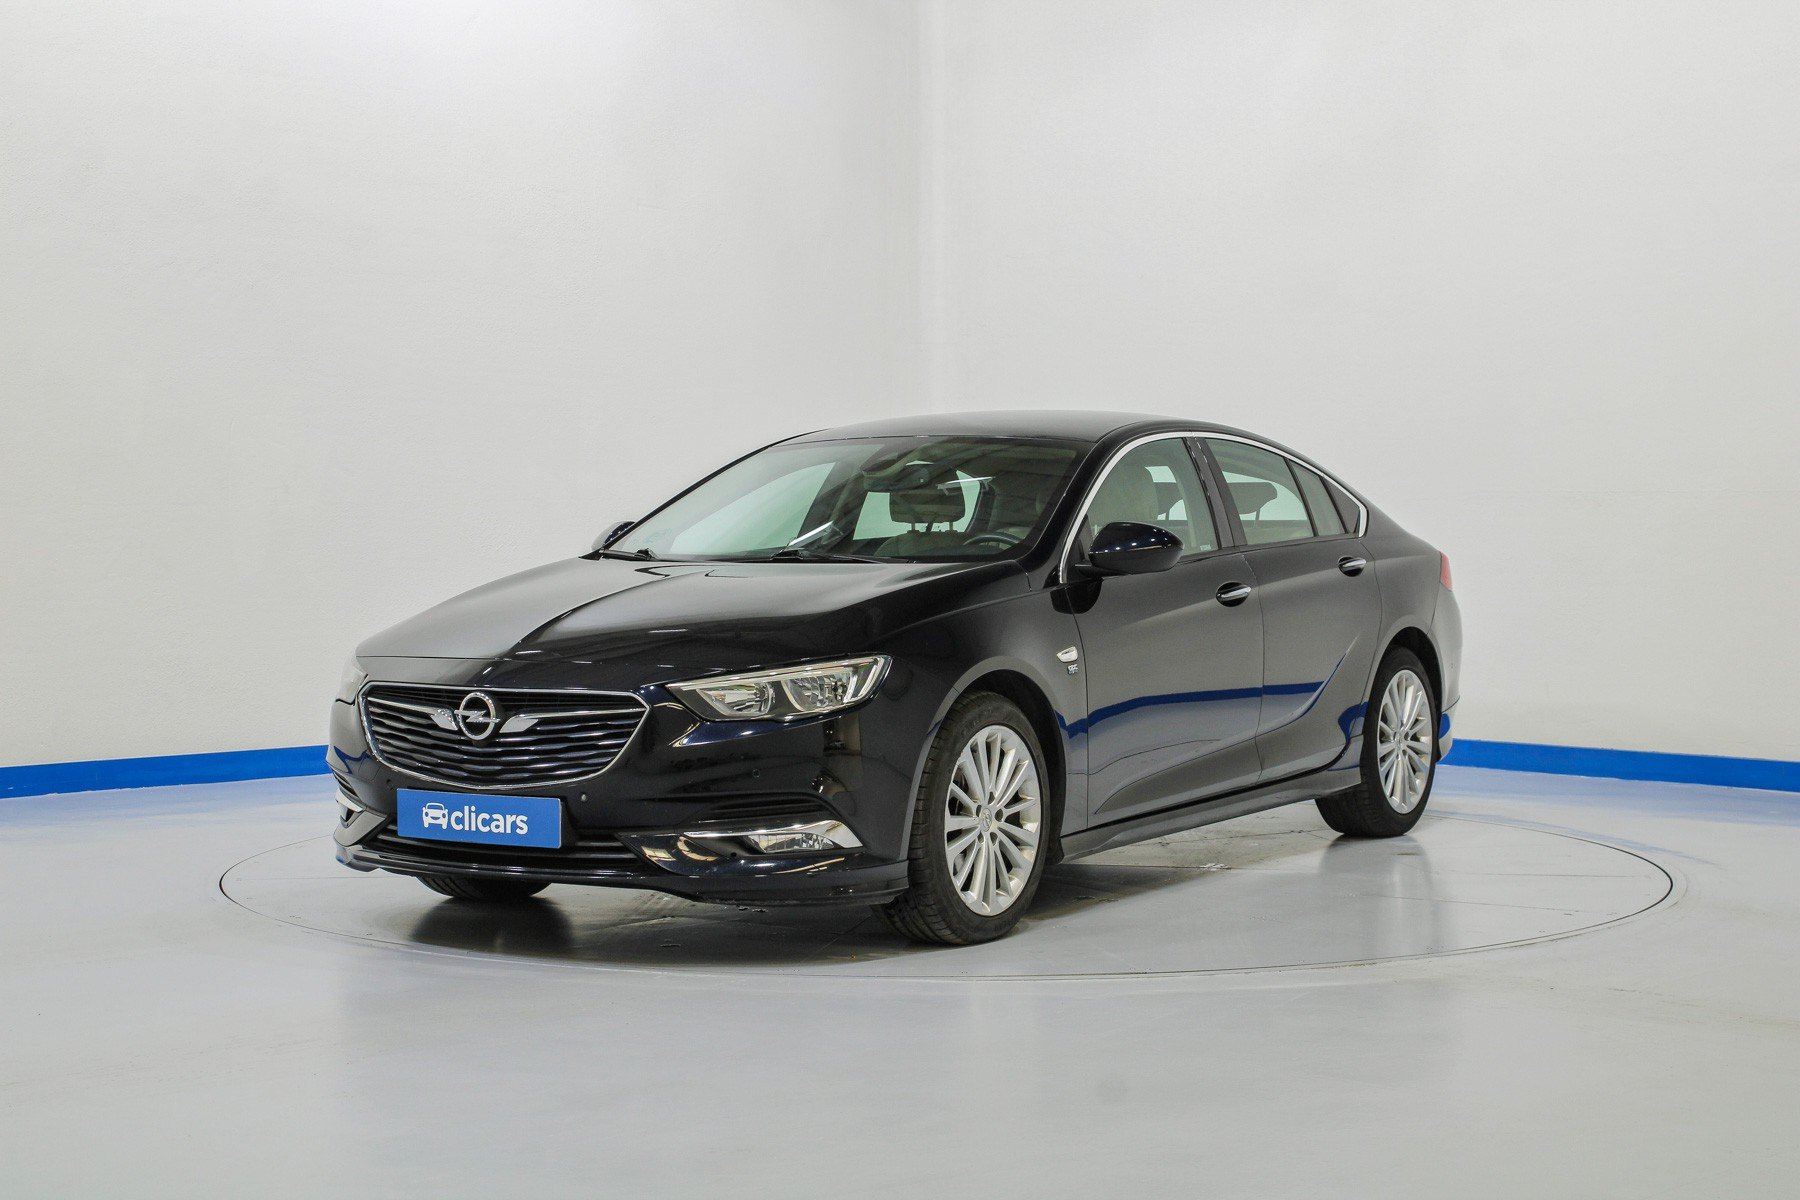 Opel Insignia Diésel GS 1.6 CDTi 100kW Turbo D Excellence 1